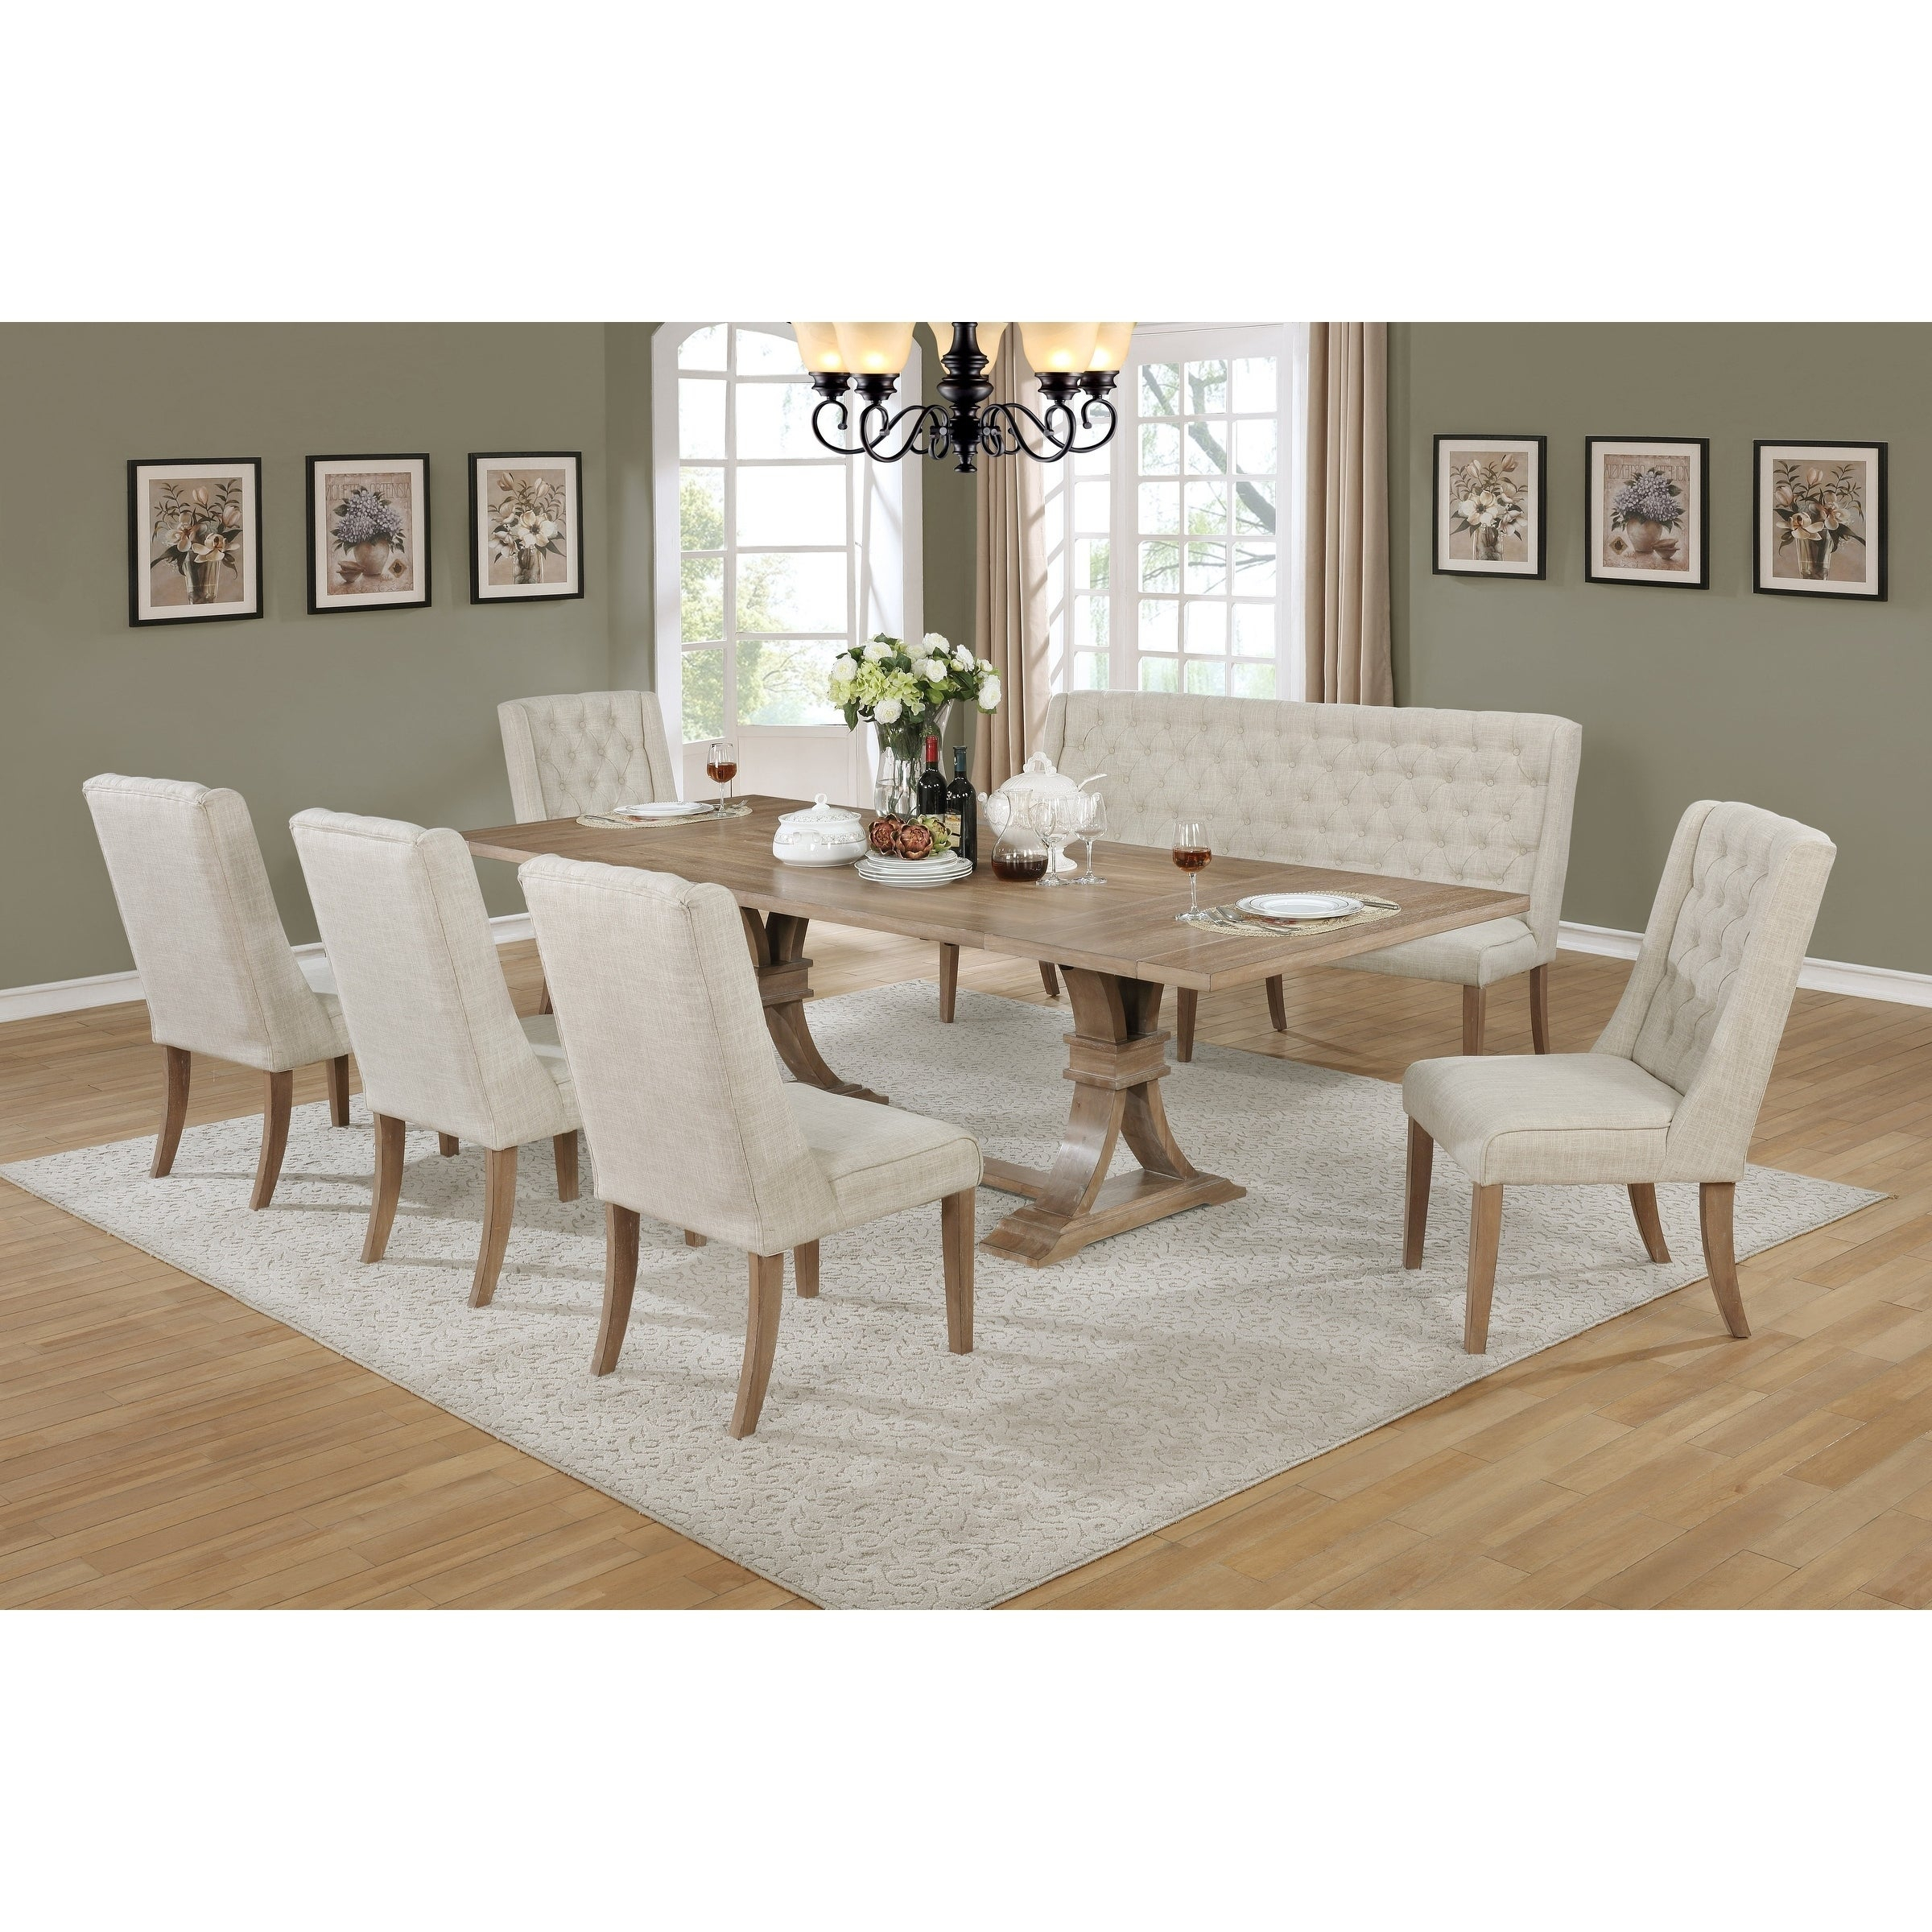 Buy Dining Room Furniture Online: 20 Best Ideas Of Autberry 5 Piece Dining Sets